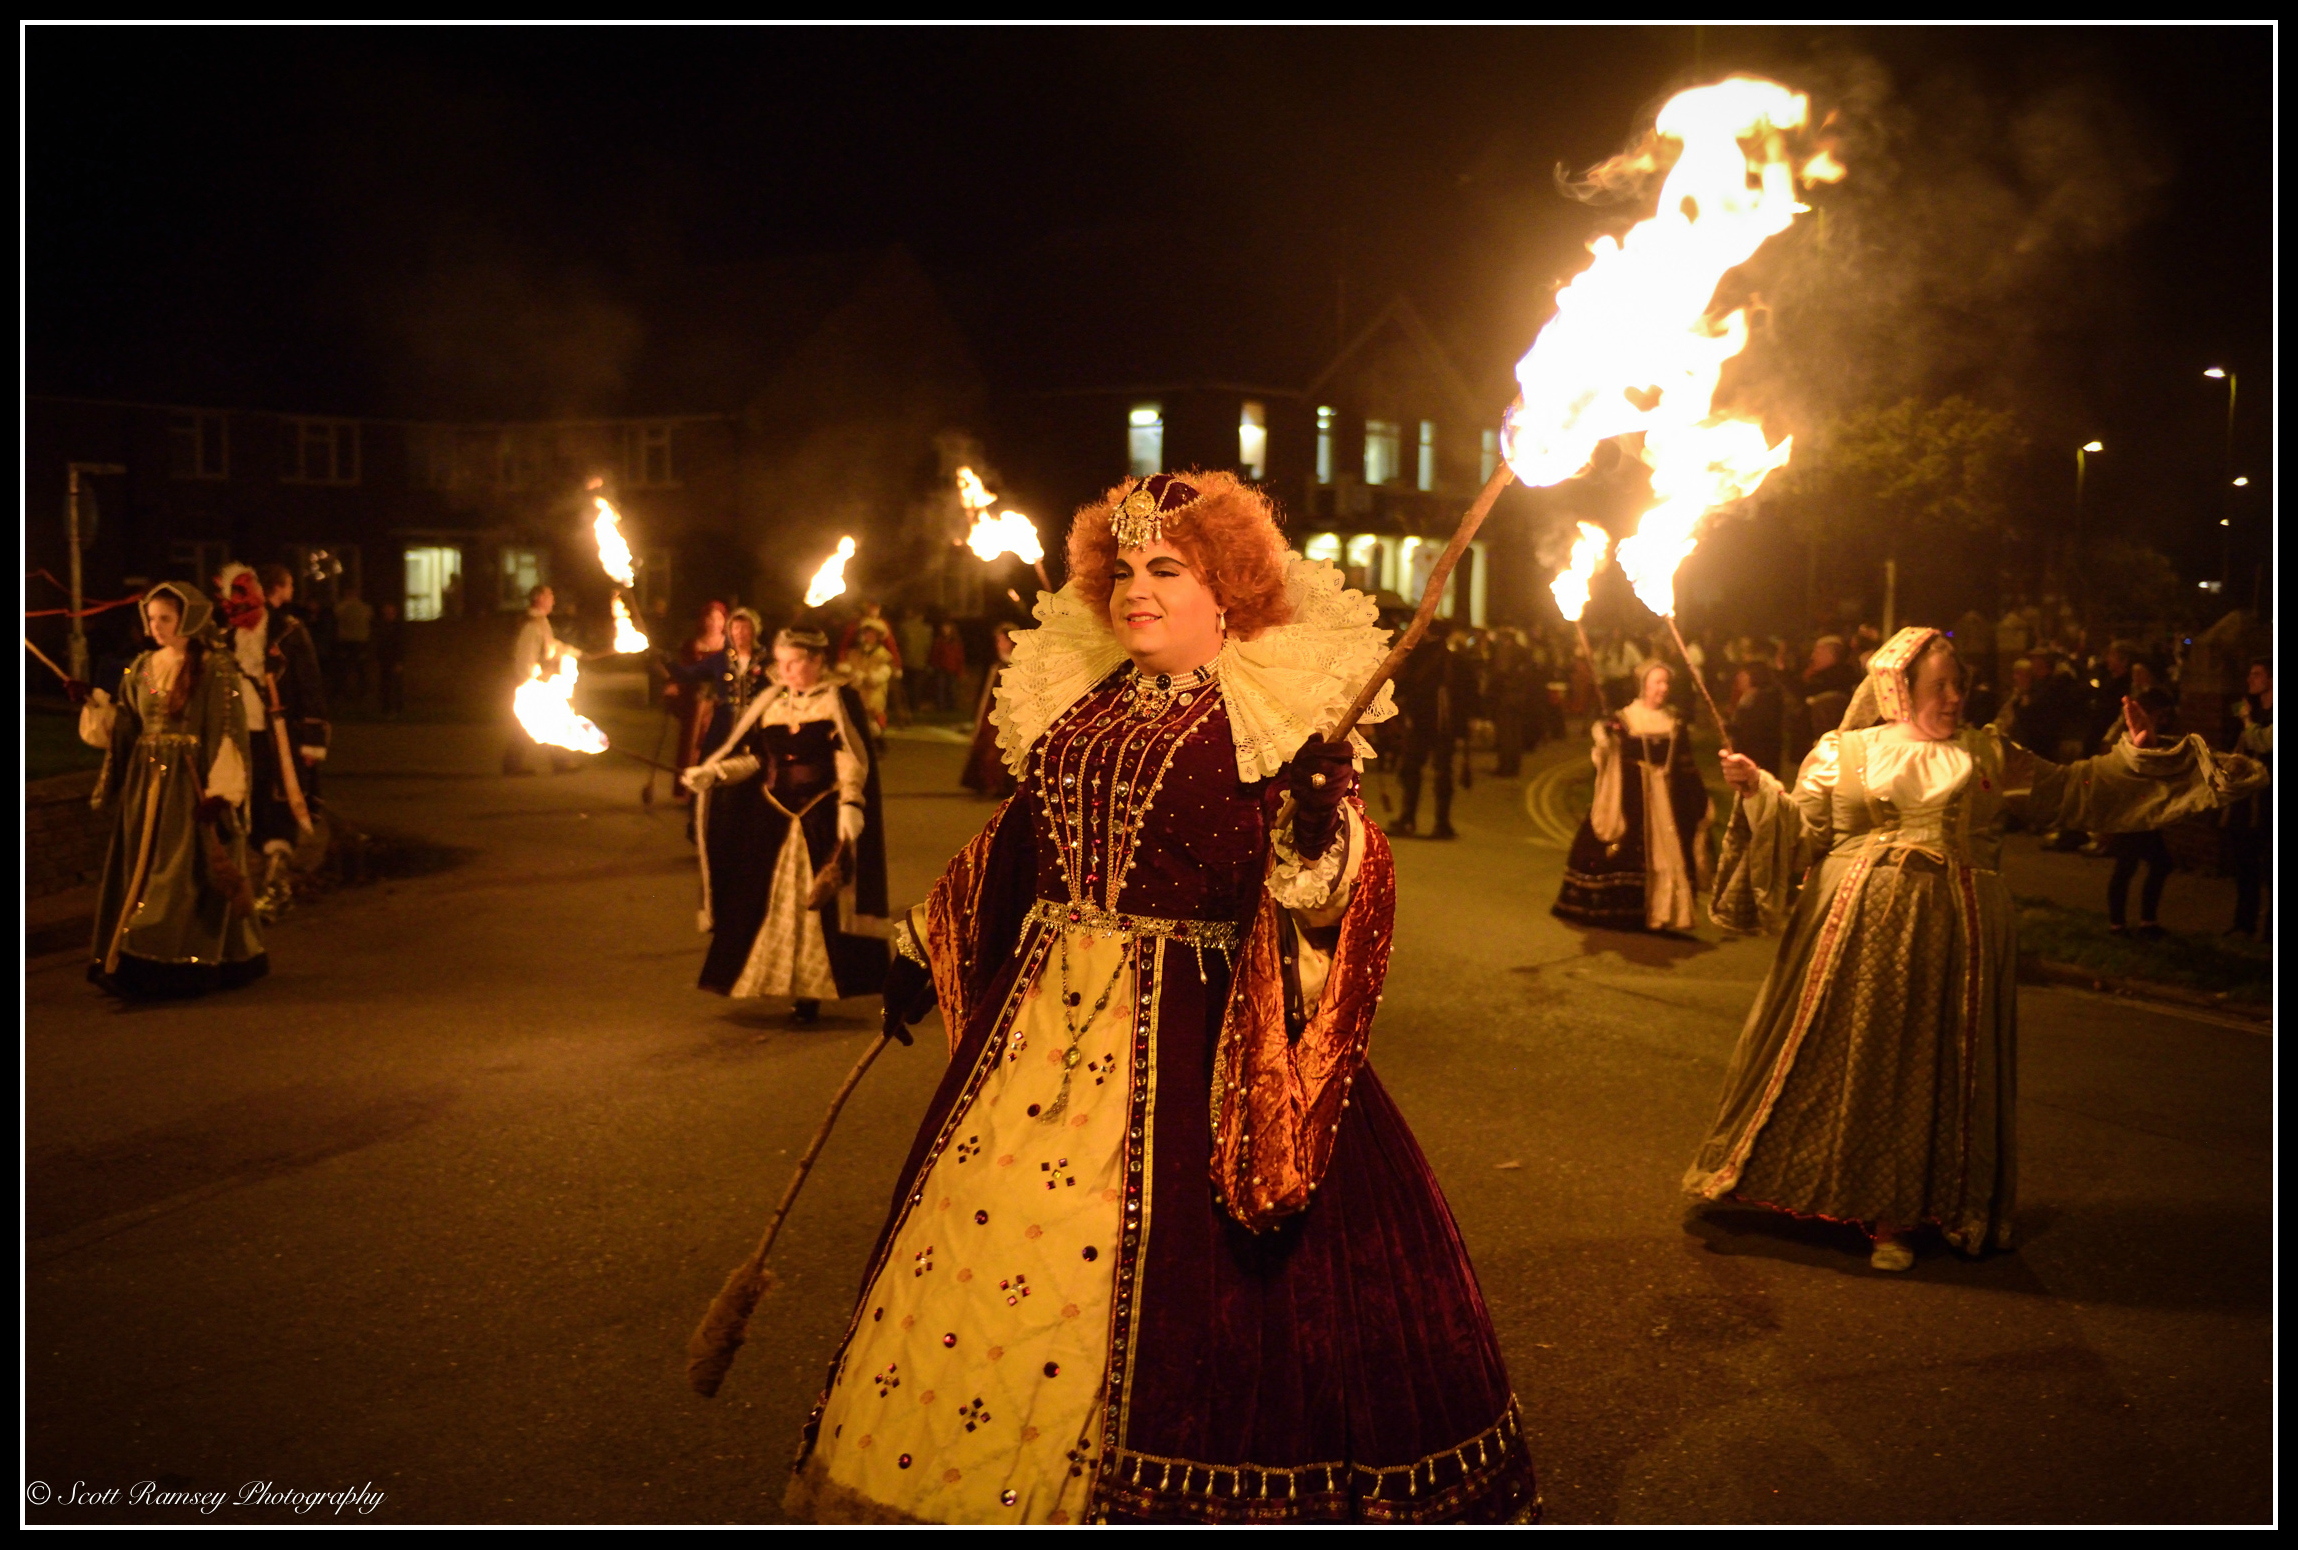 A member of the Littlehampton Bonfire Society dressed in a Tudor costume holds a flaming torch as she walks through the Littlehampton streets.